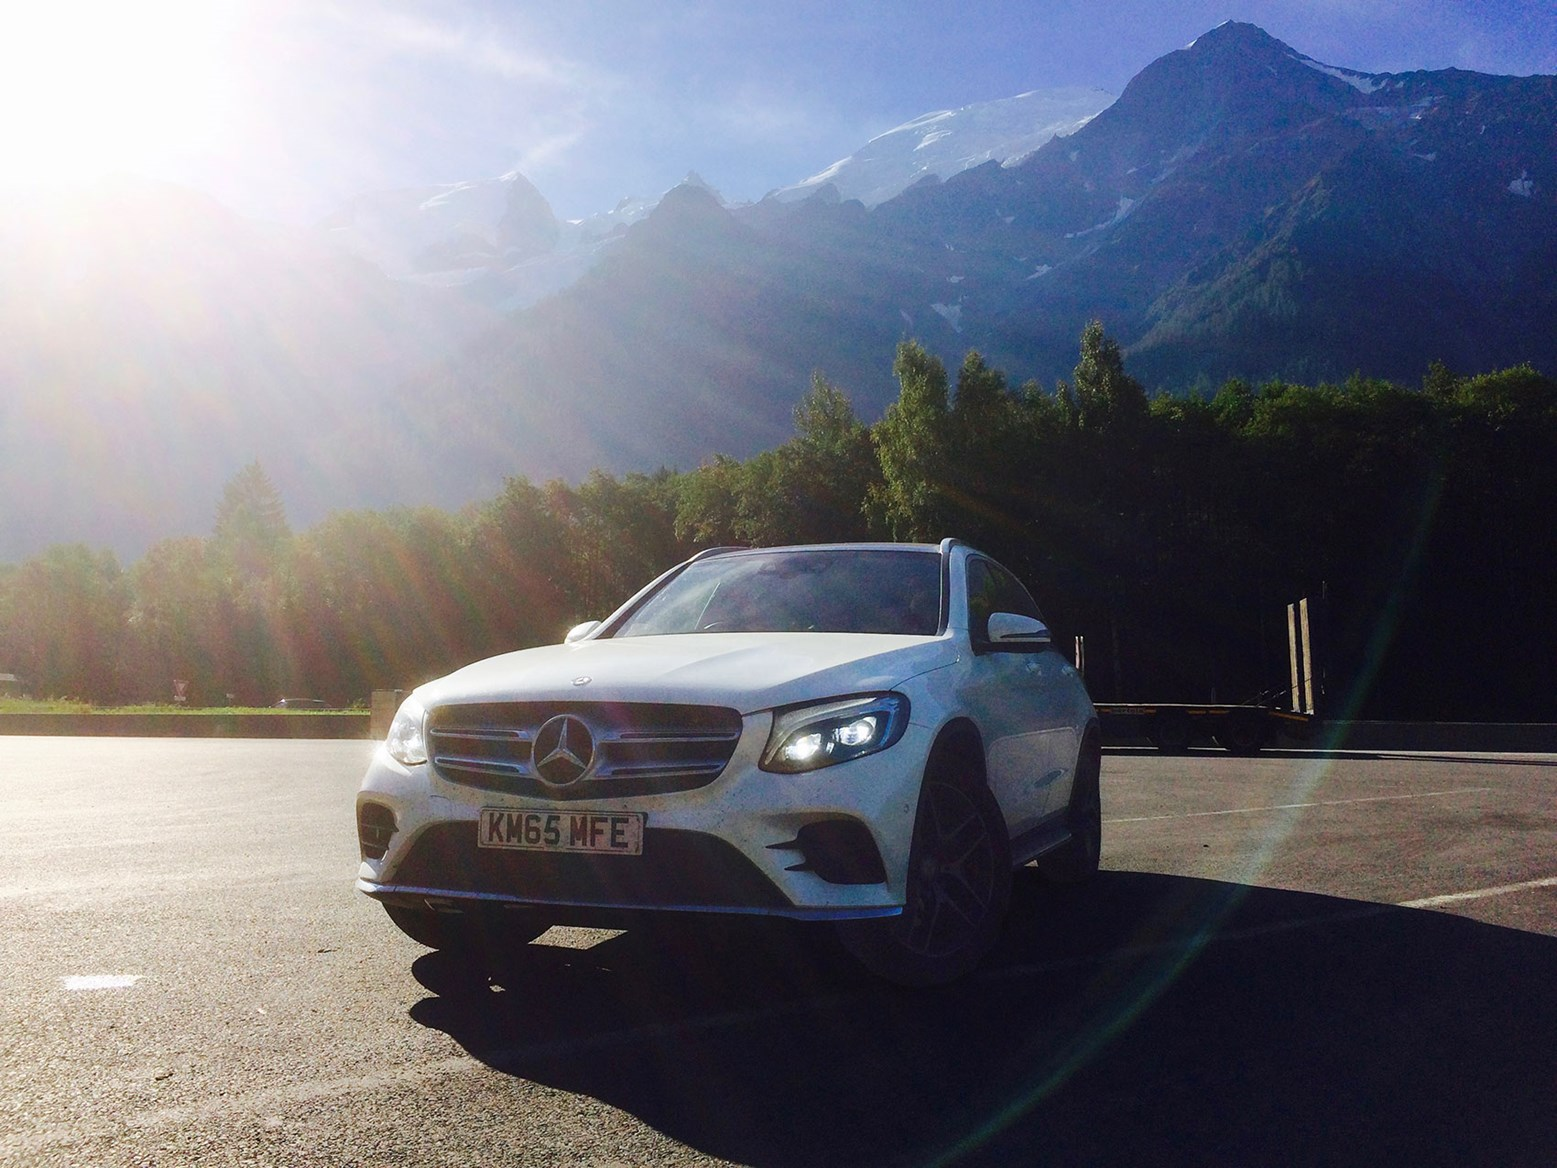 Standing in the shadow of Mont Blanc: our Merc GLC